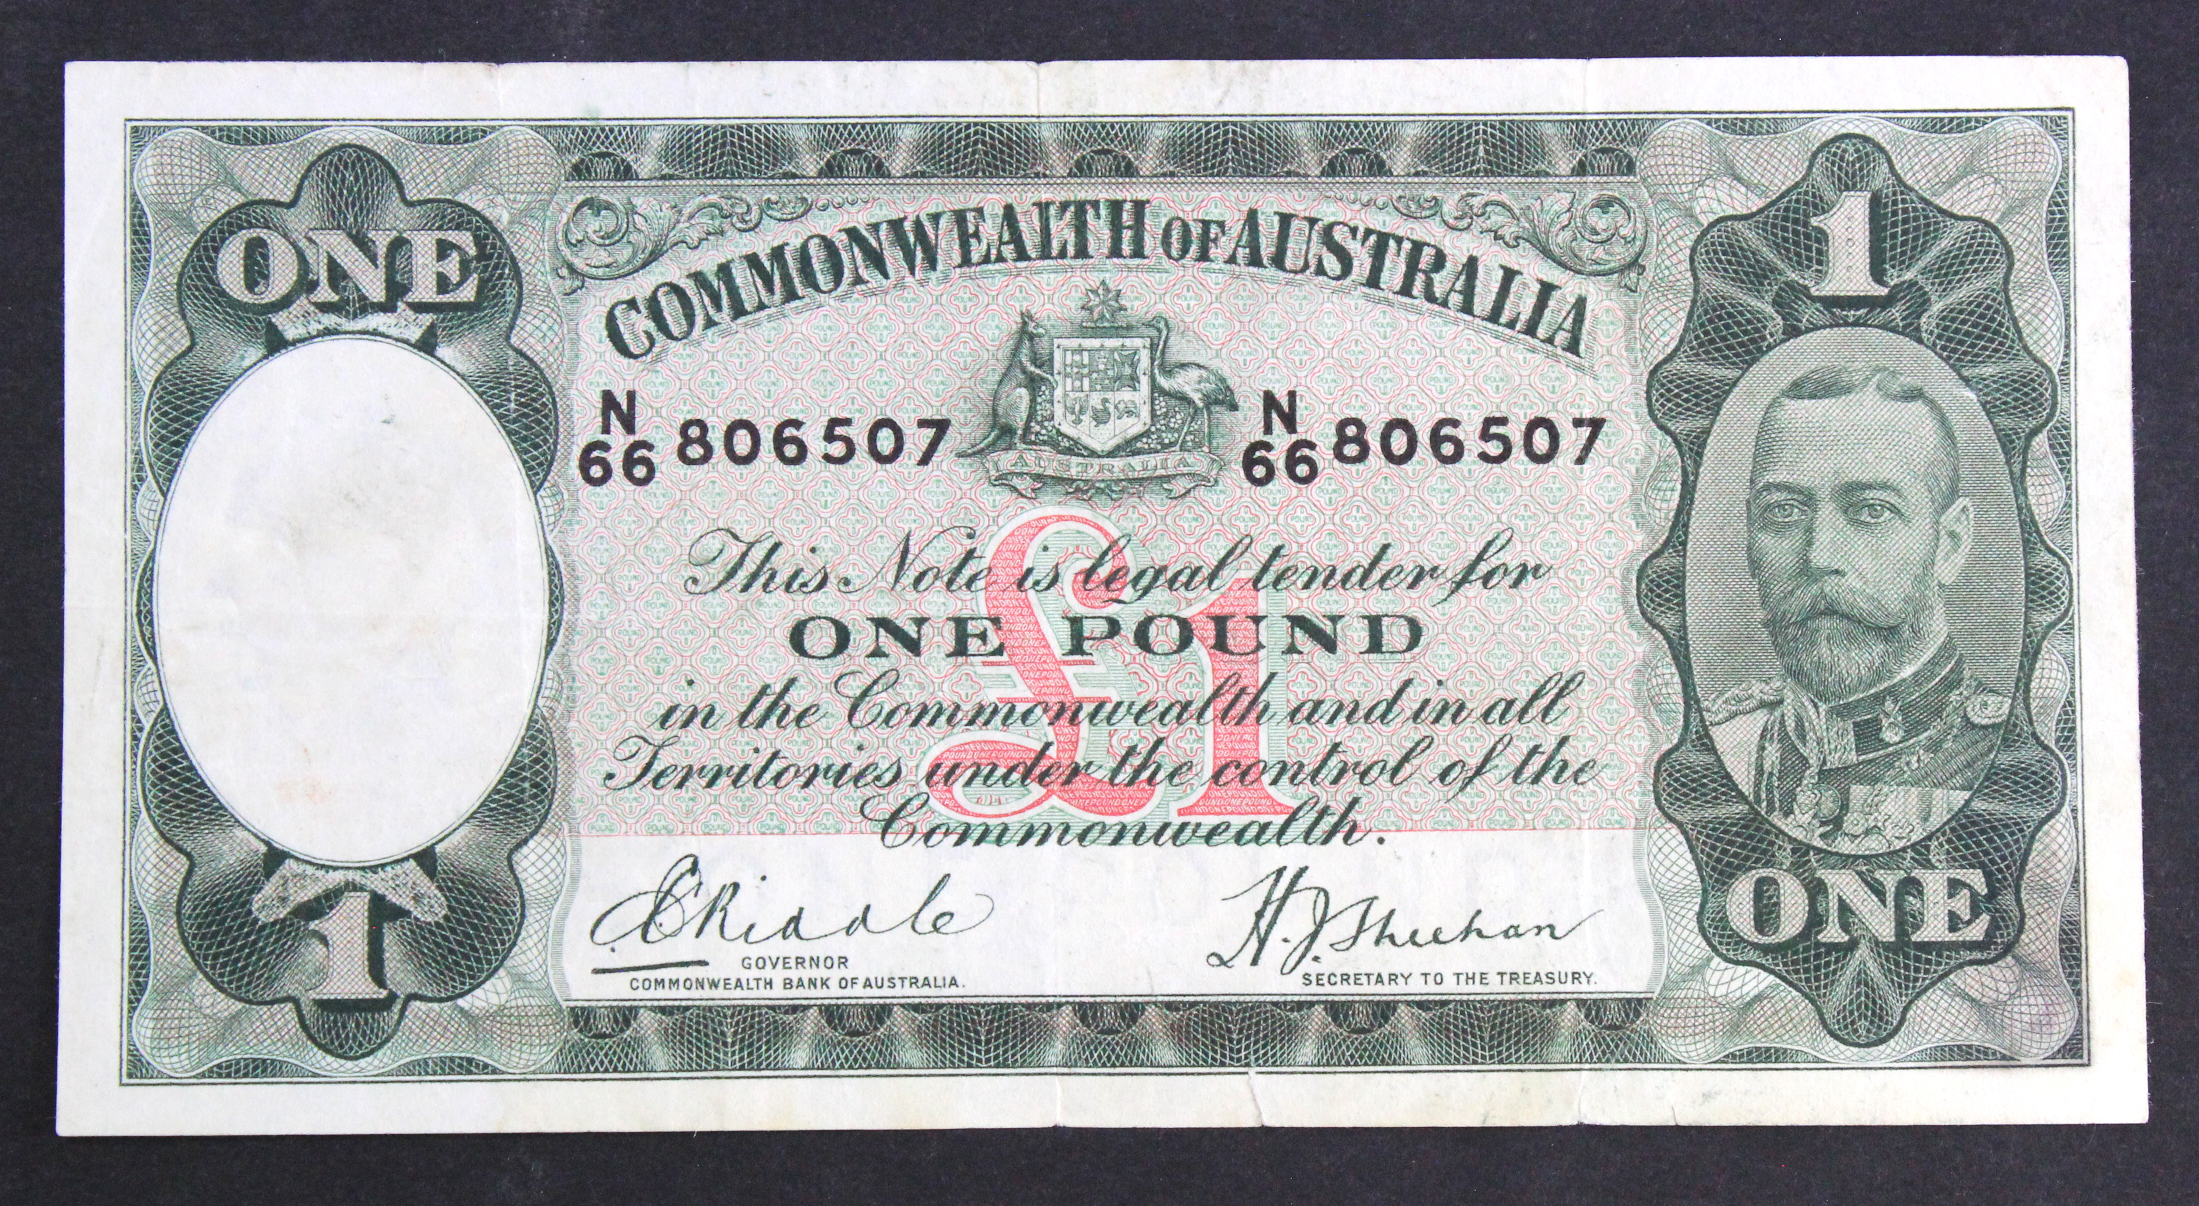 Australia 1 Pound issued 1933 - 1938, signed Riddle & Sheehan, King George V portrait, serial N/66